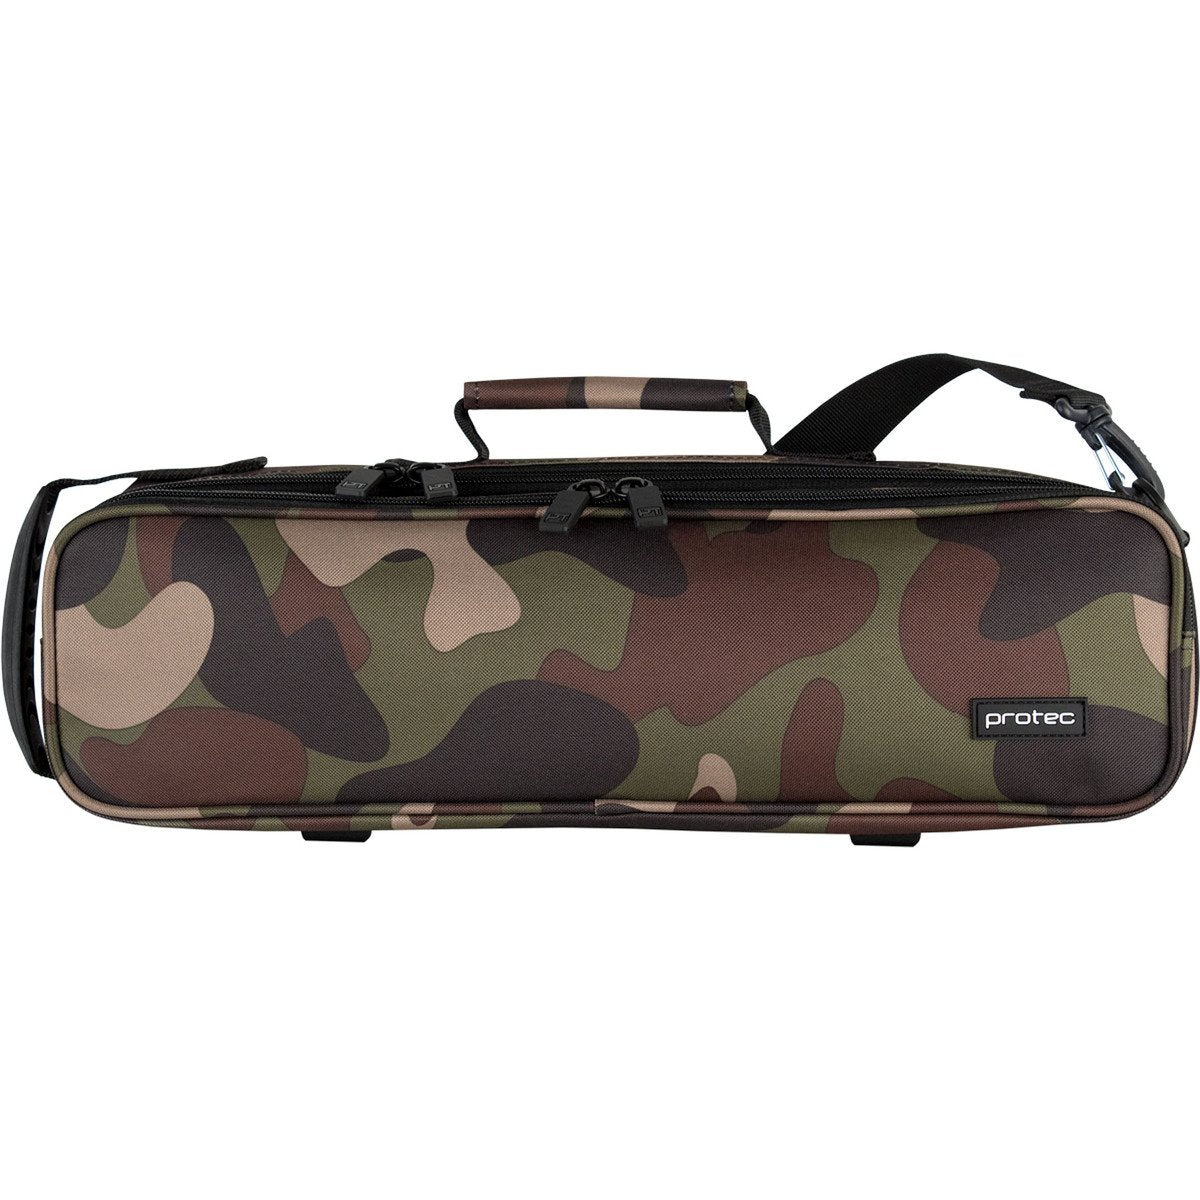 Protec - Deluxe Flute Case Cover (Camo)-Accessories-Protec-Music Elements